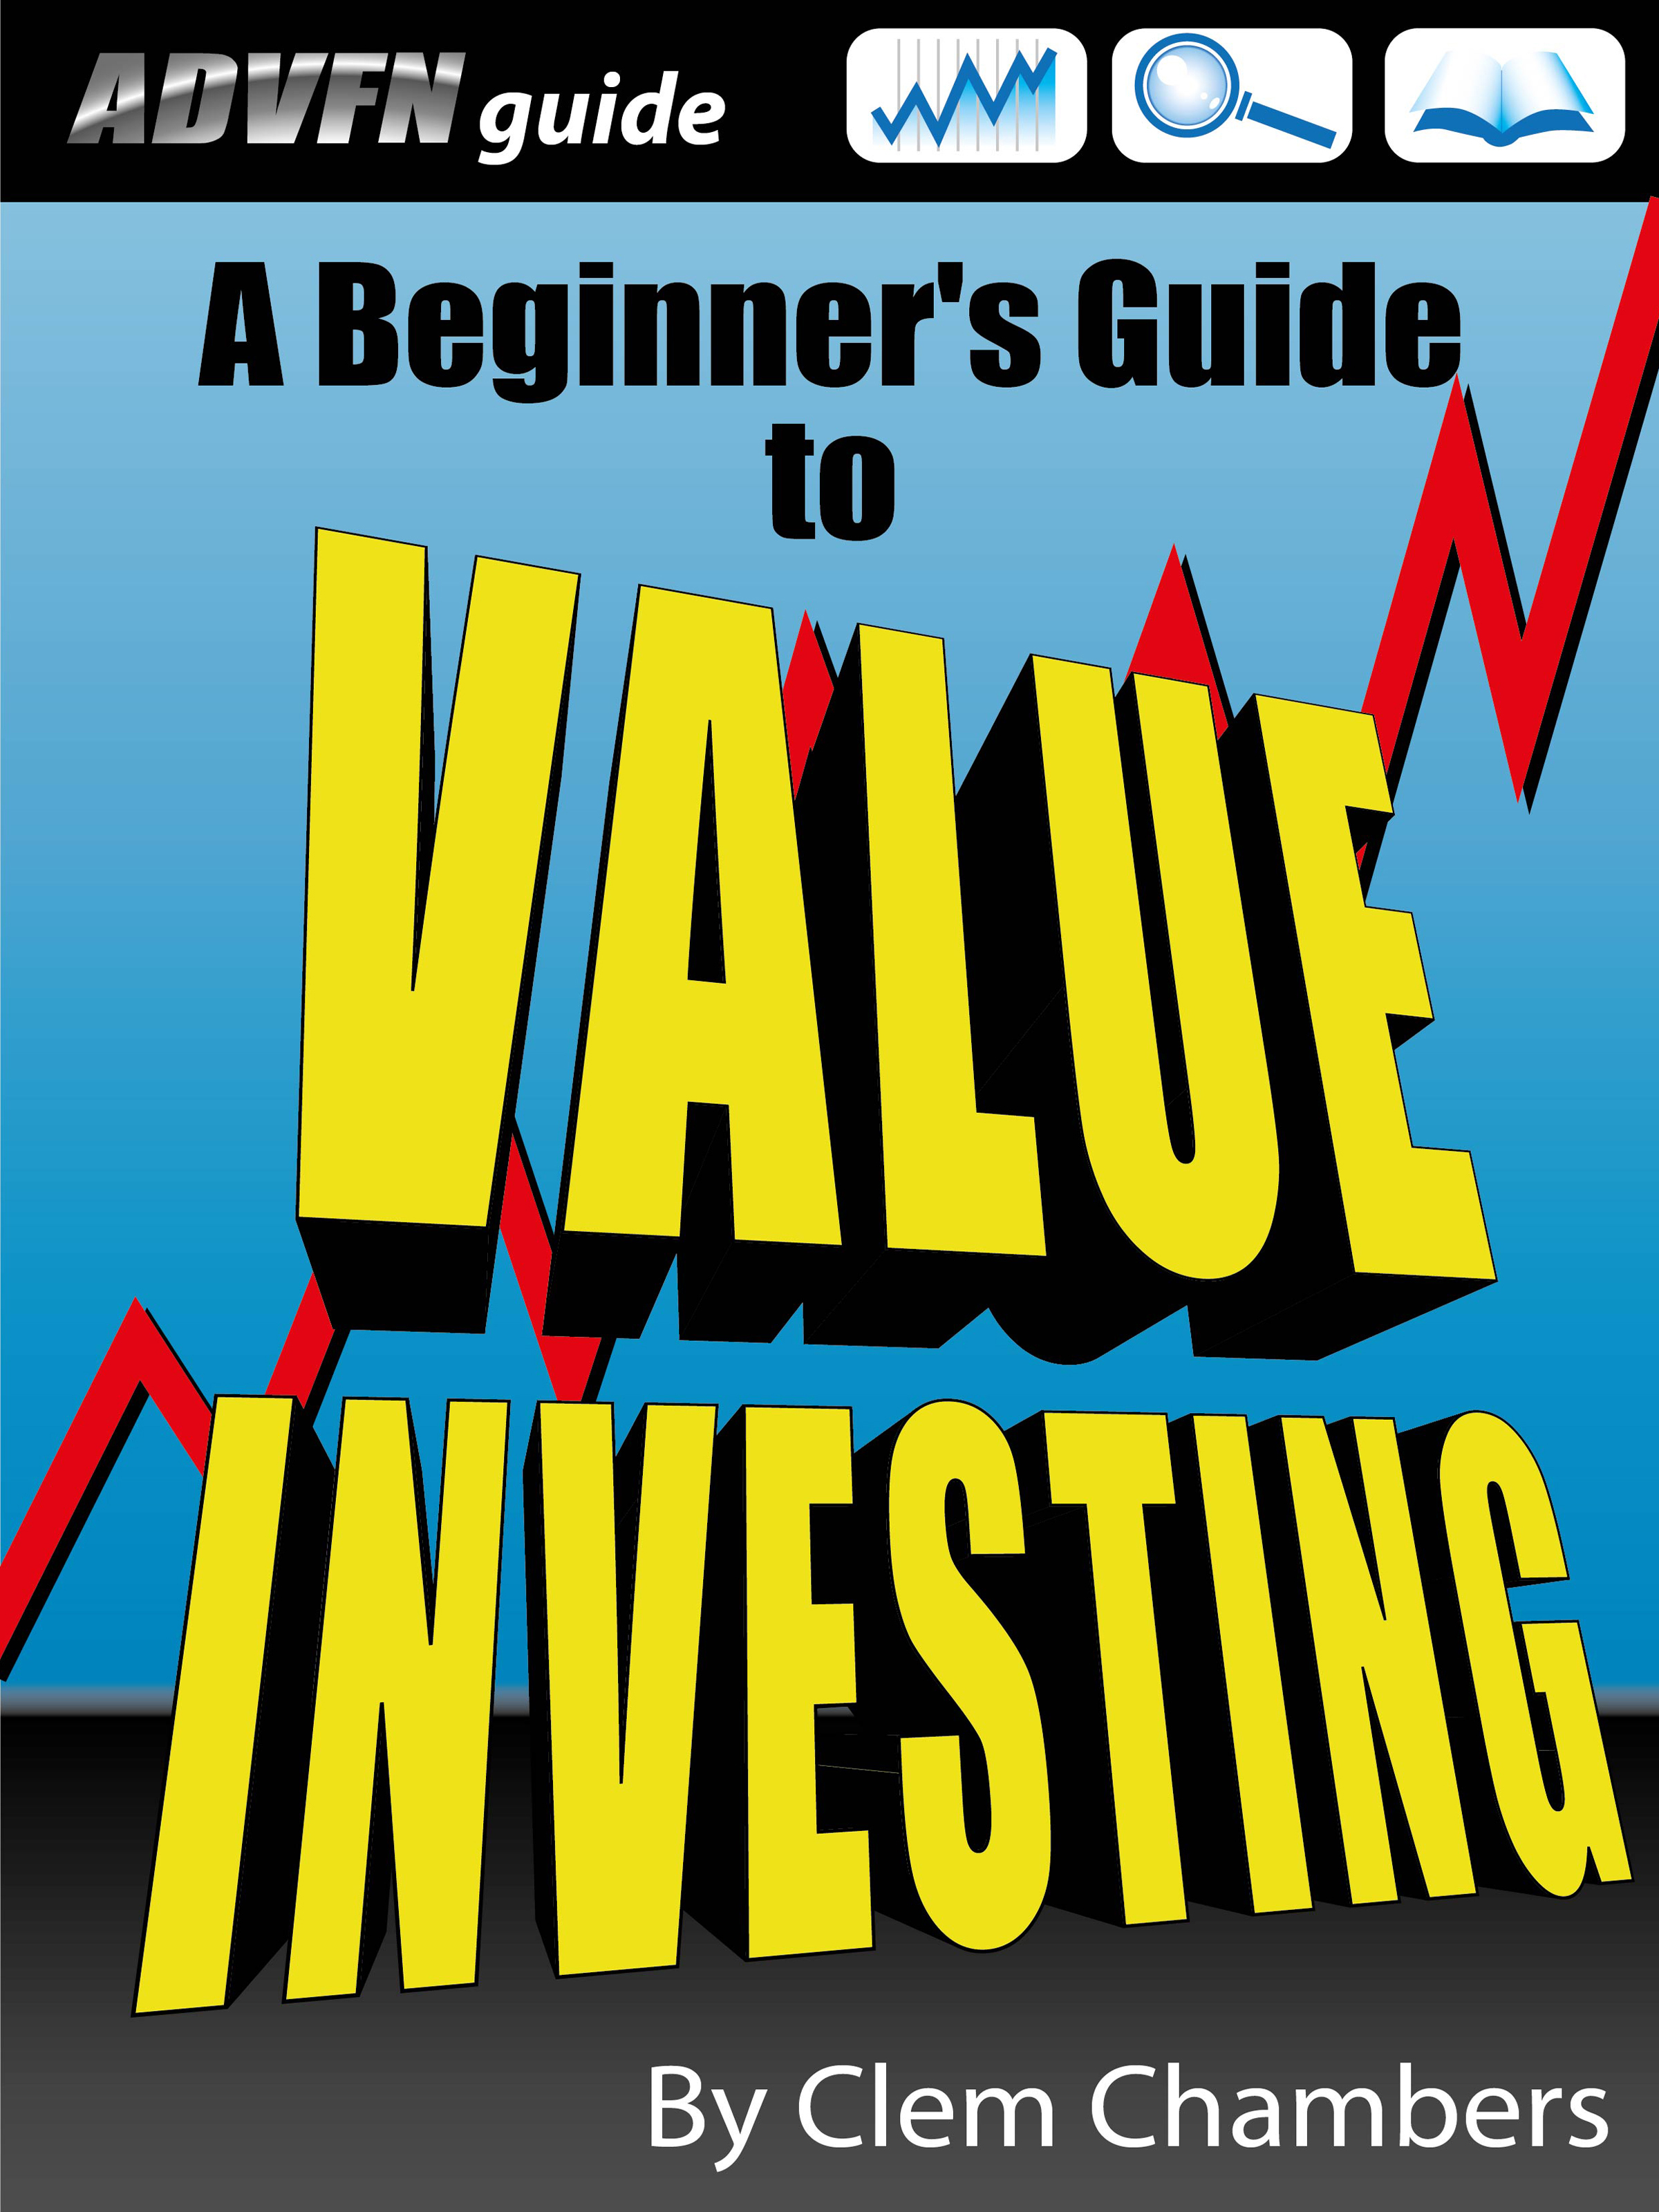 ADVFN Guide: A Beginner's Guide to Value Investing